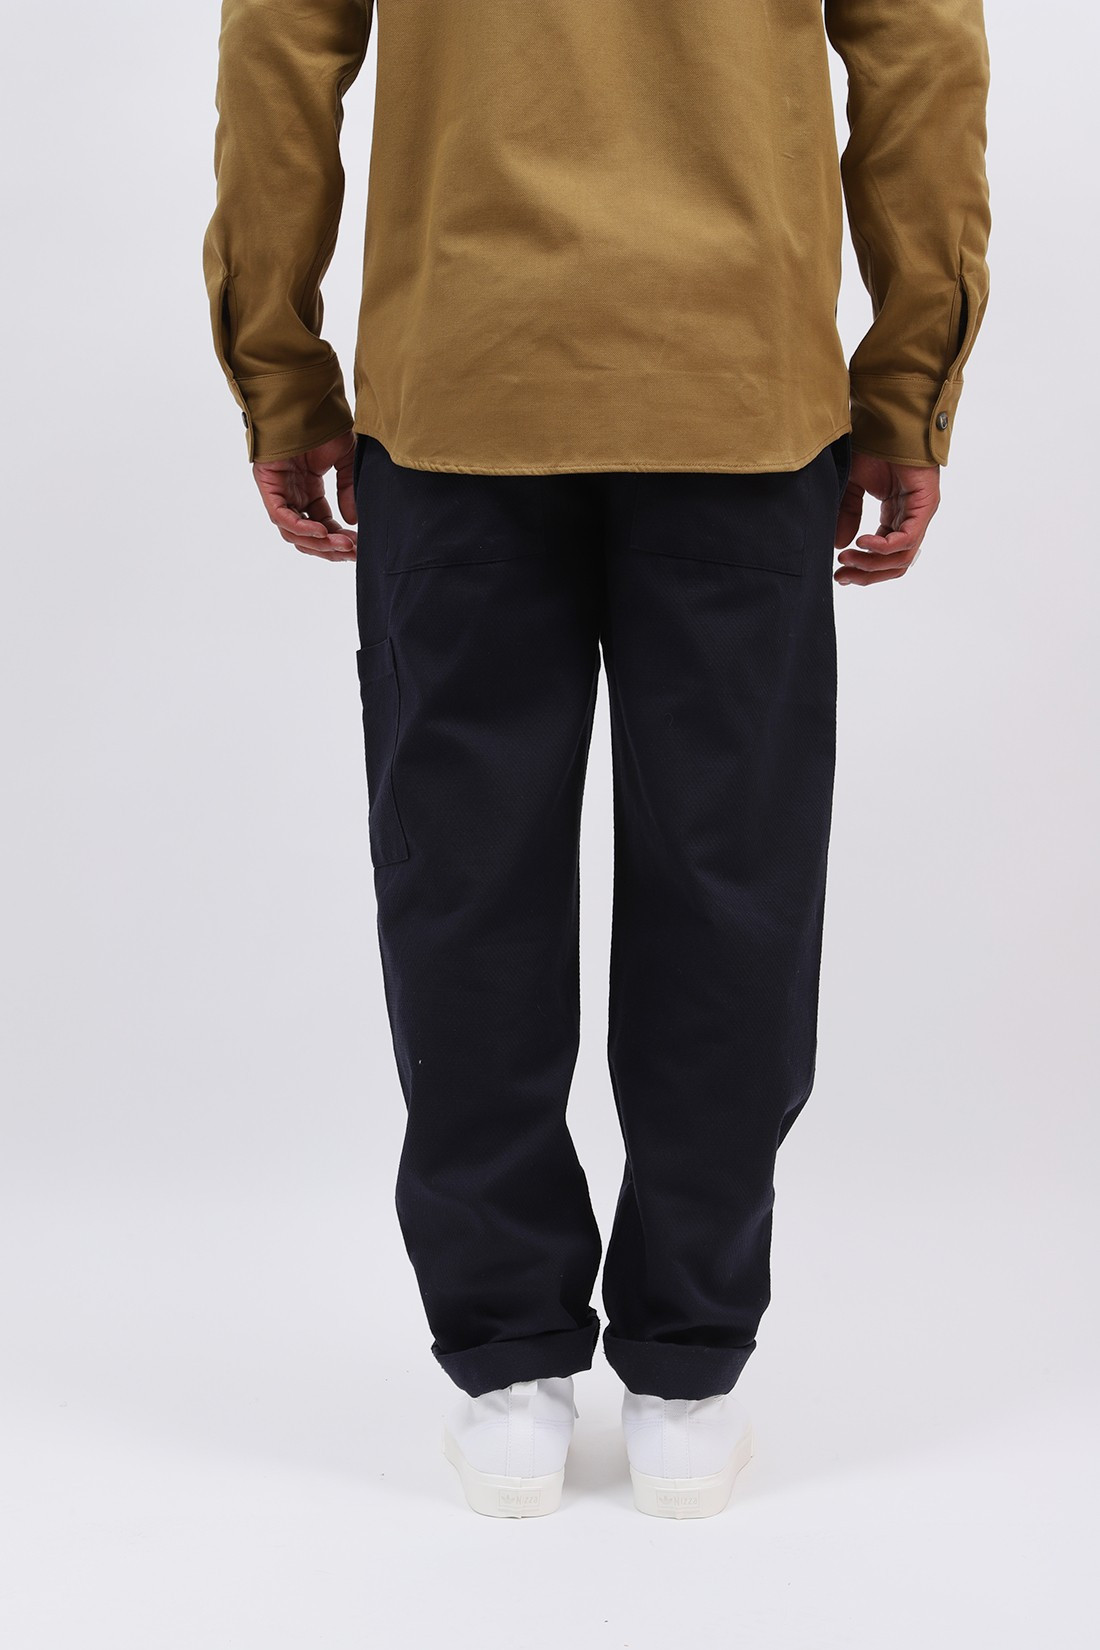 OLIVER SPENCER / Judo pant rushmore Navy